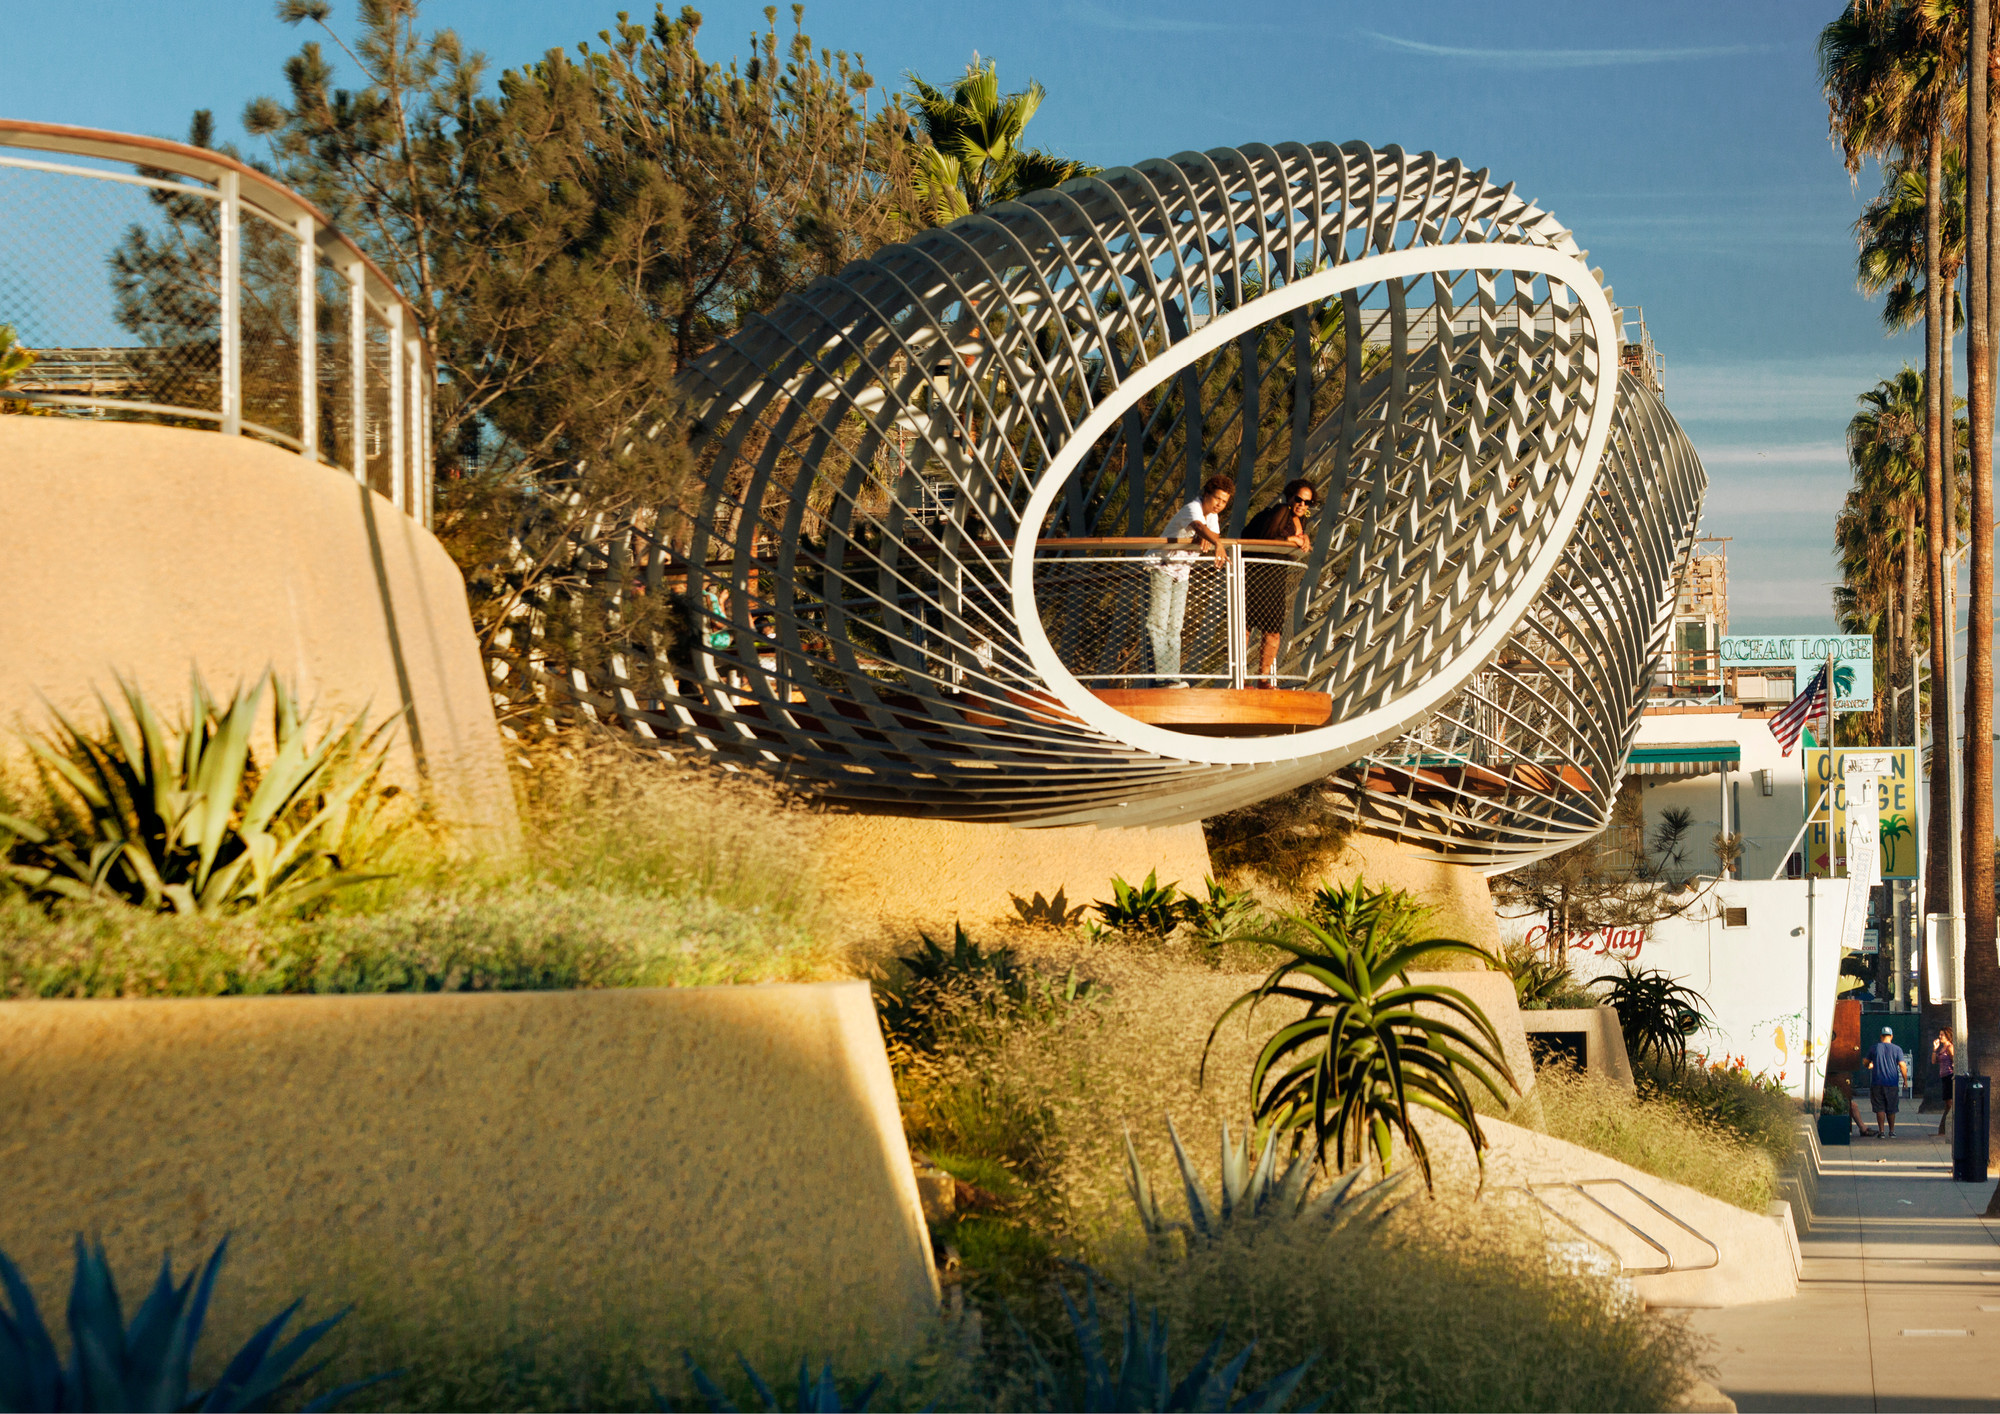 Tongva Park and Ken Genser Square. Image Courtesy of Urban Land Institute